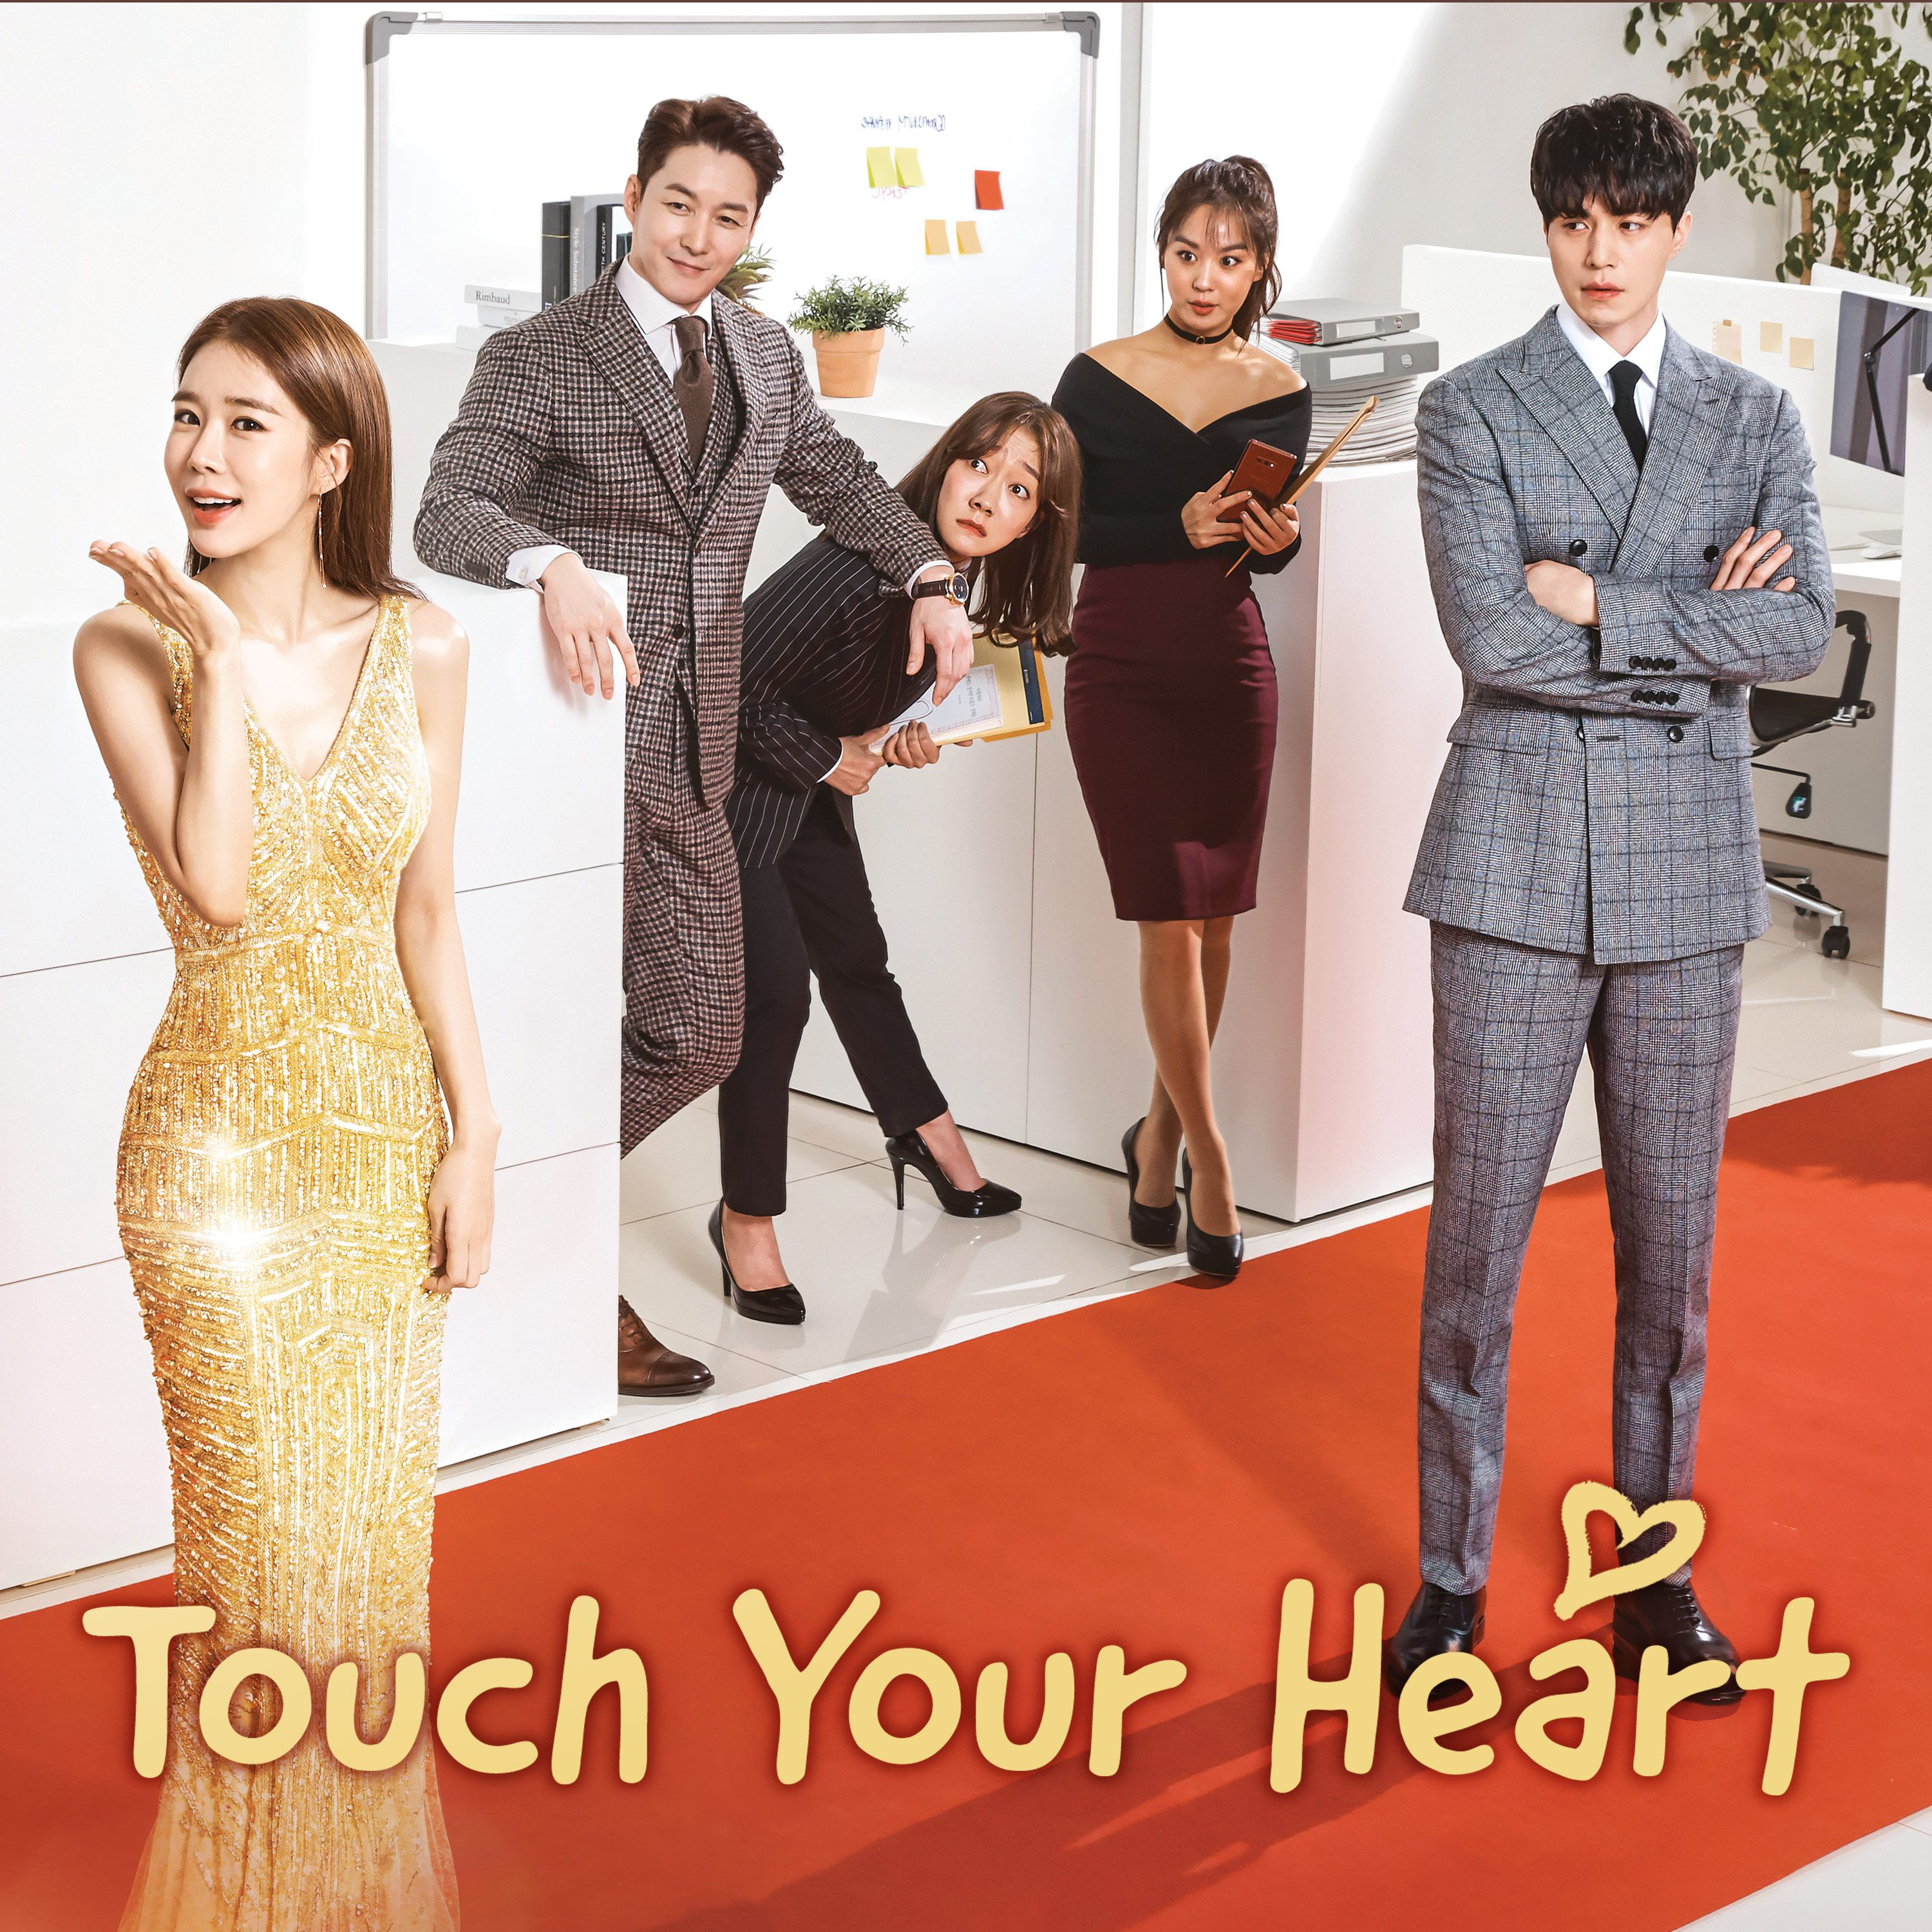 Touch Your Heart Episode 1 - 진심이 닿다 - Watch Full